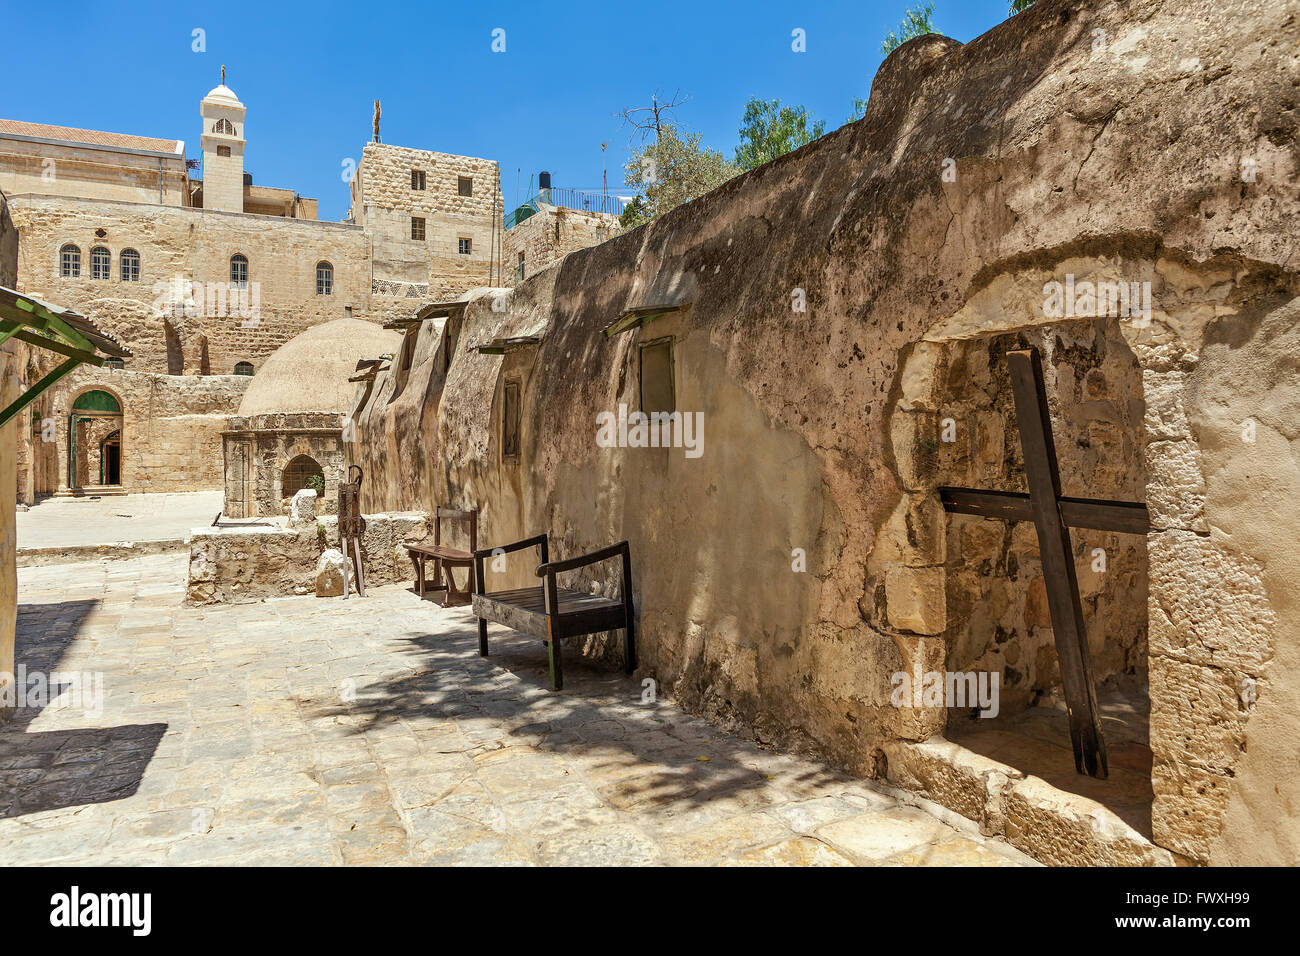 Wooden cross and stone monastic cells on the roof of the Church of the Holy Sepulchre in Jerusalem, Israel. - Stock Image